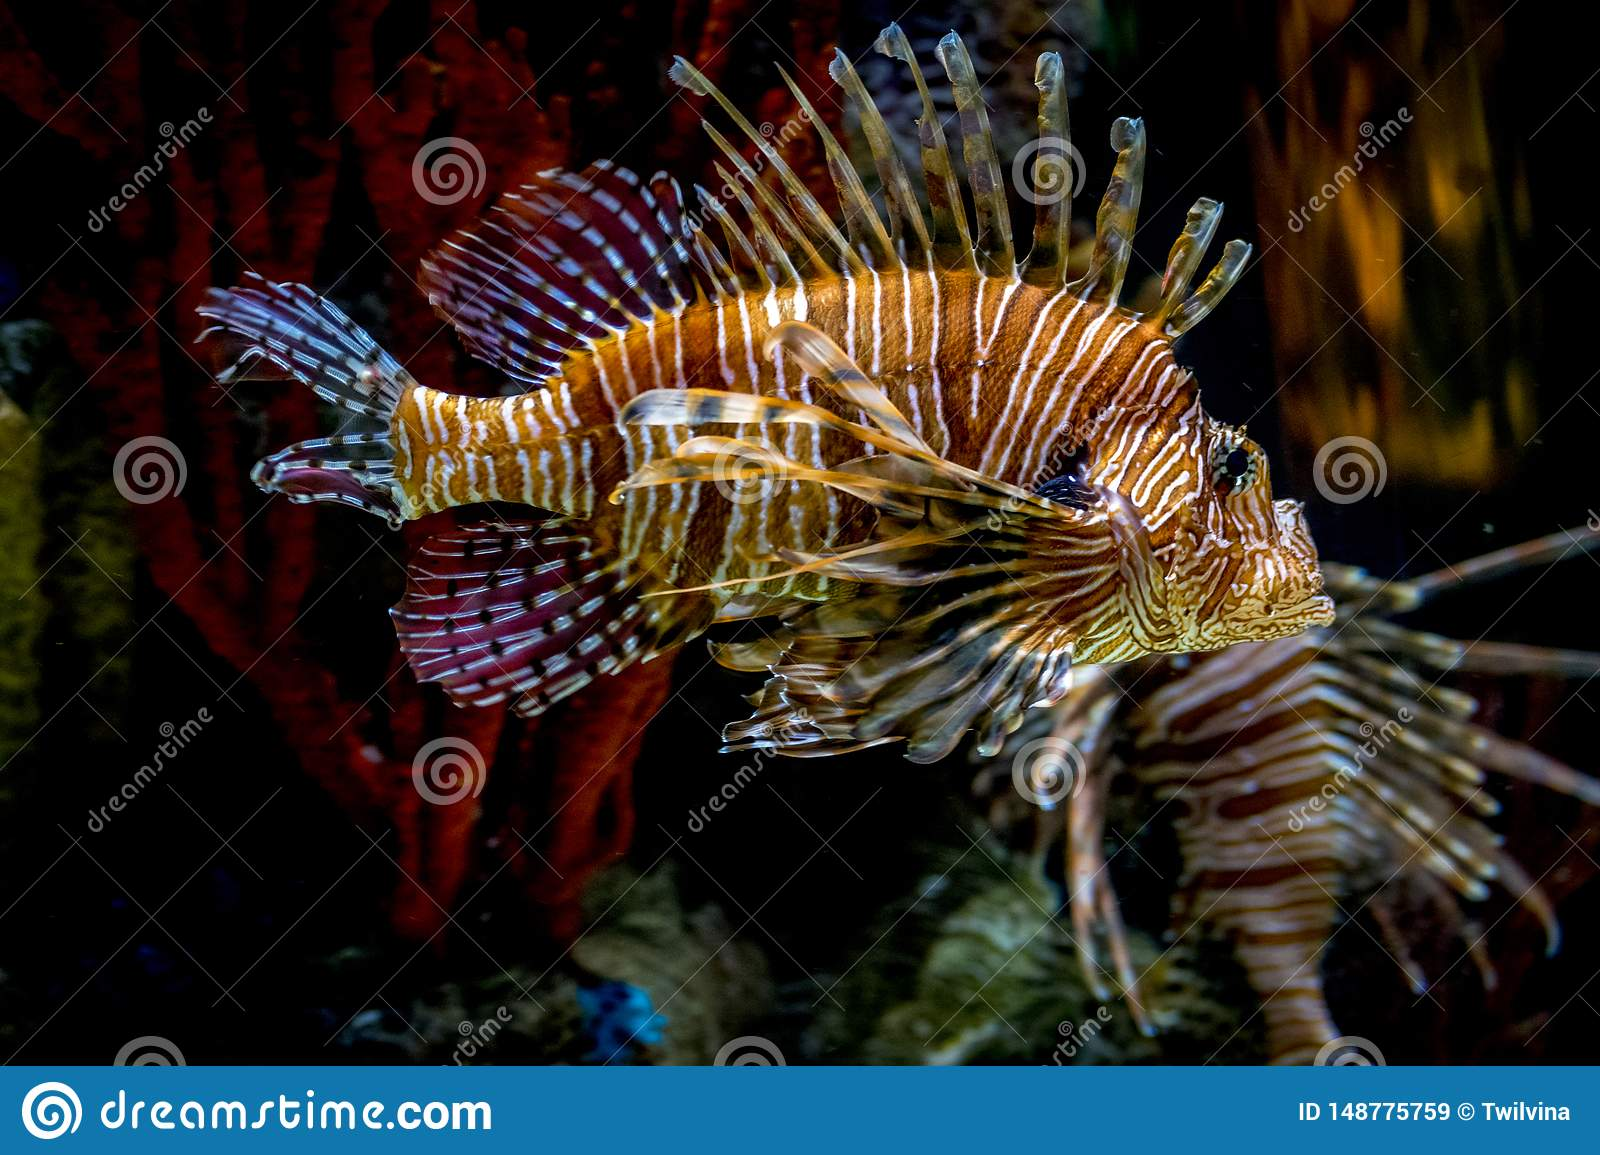 Scorpion fish under water life reef